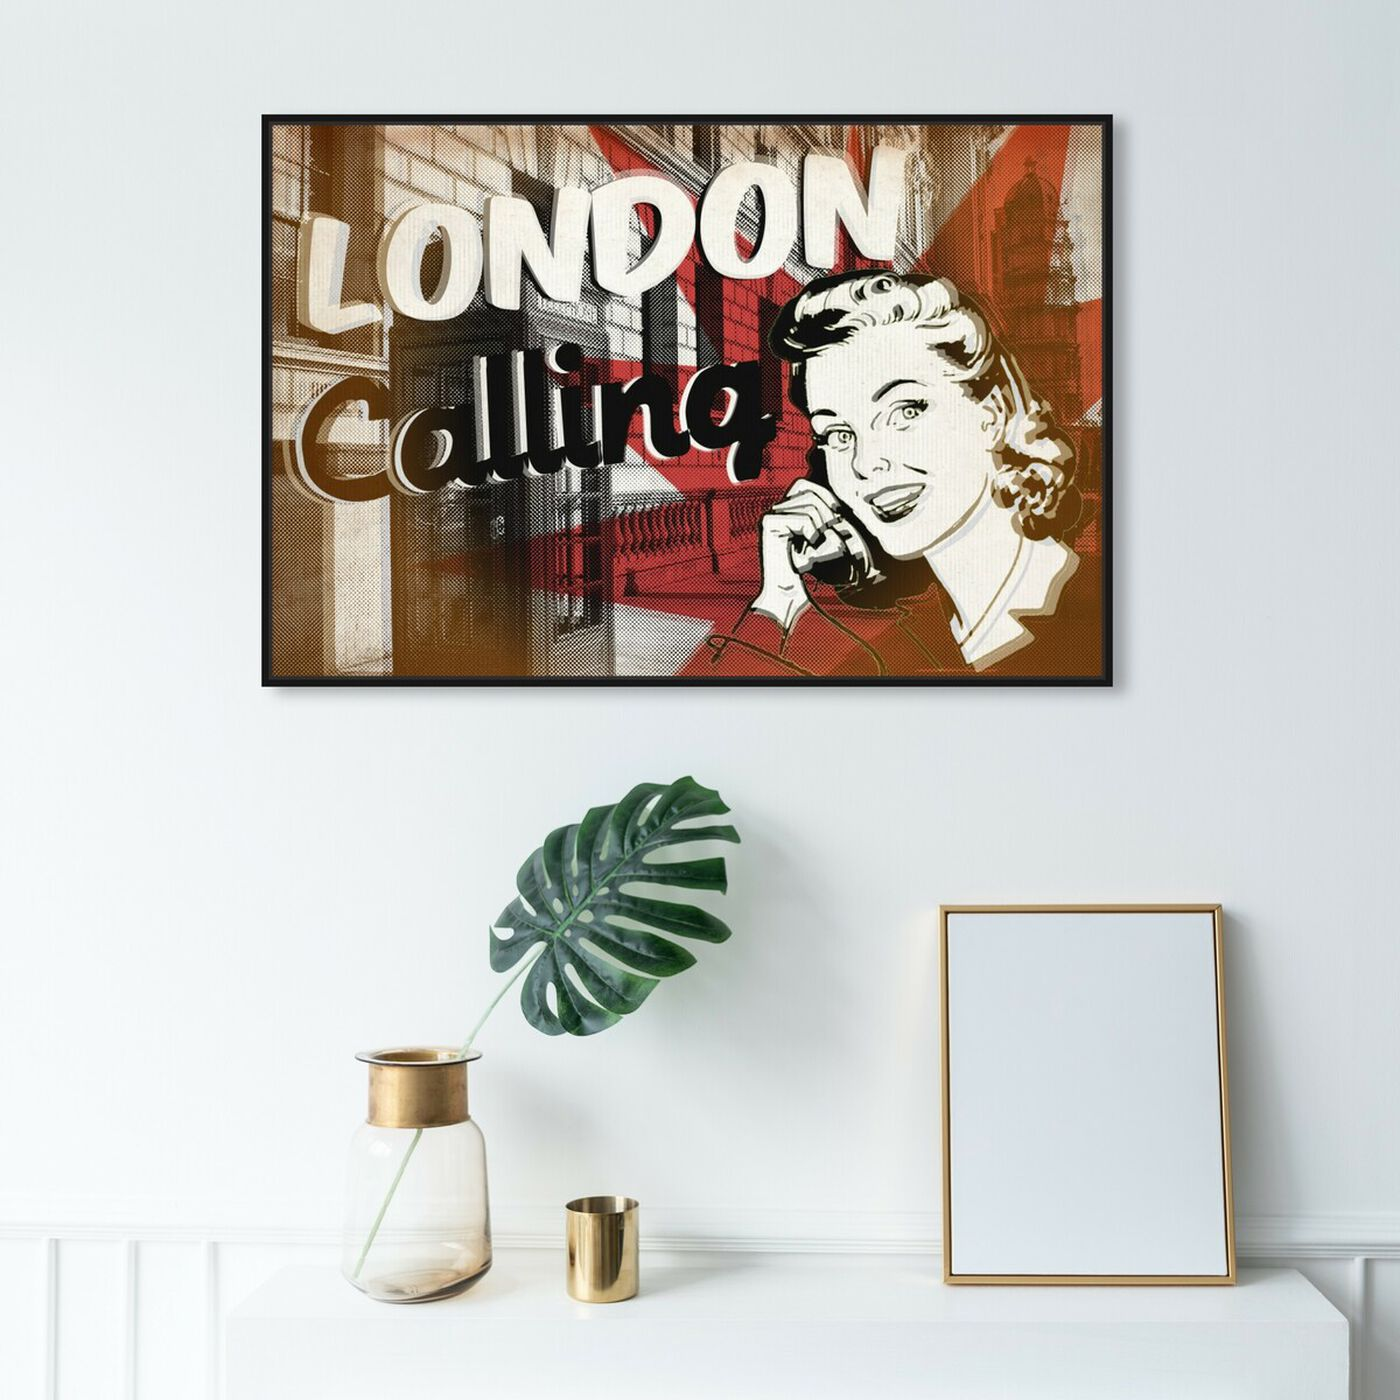 Hanging view of London Calling featuring advertising and posters art.